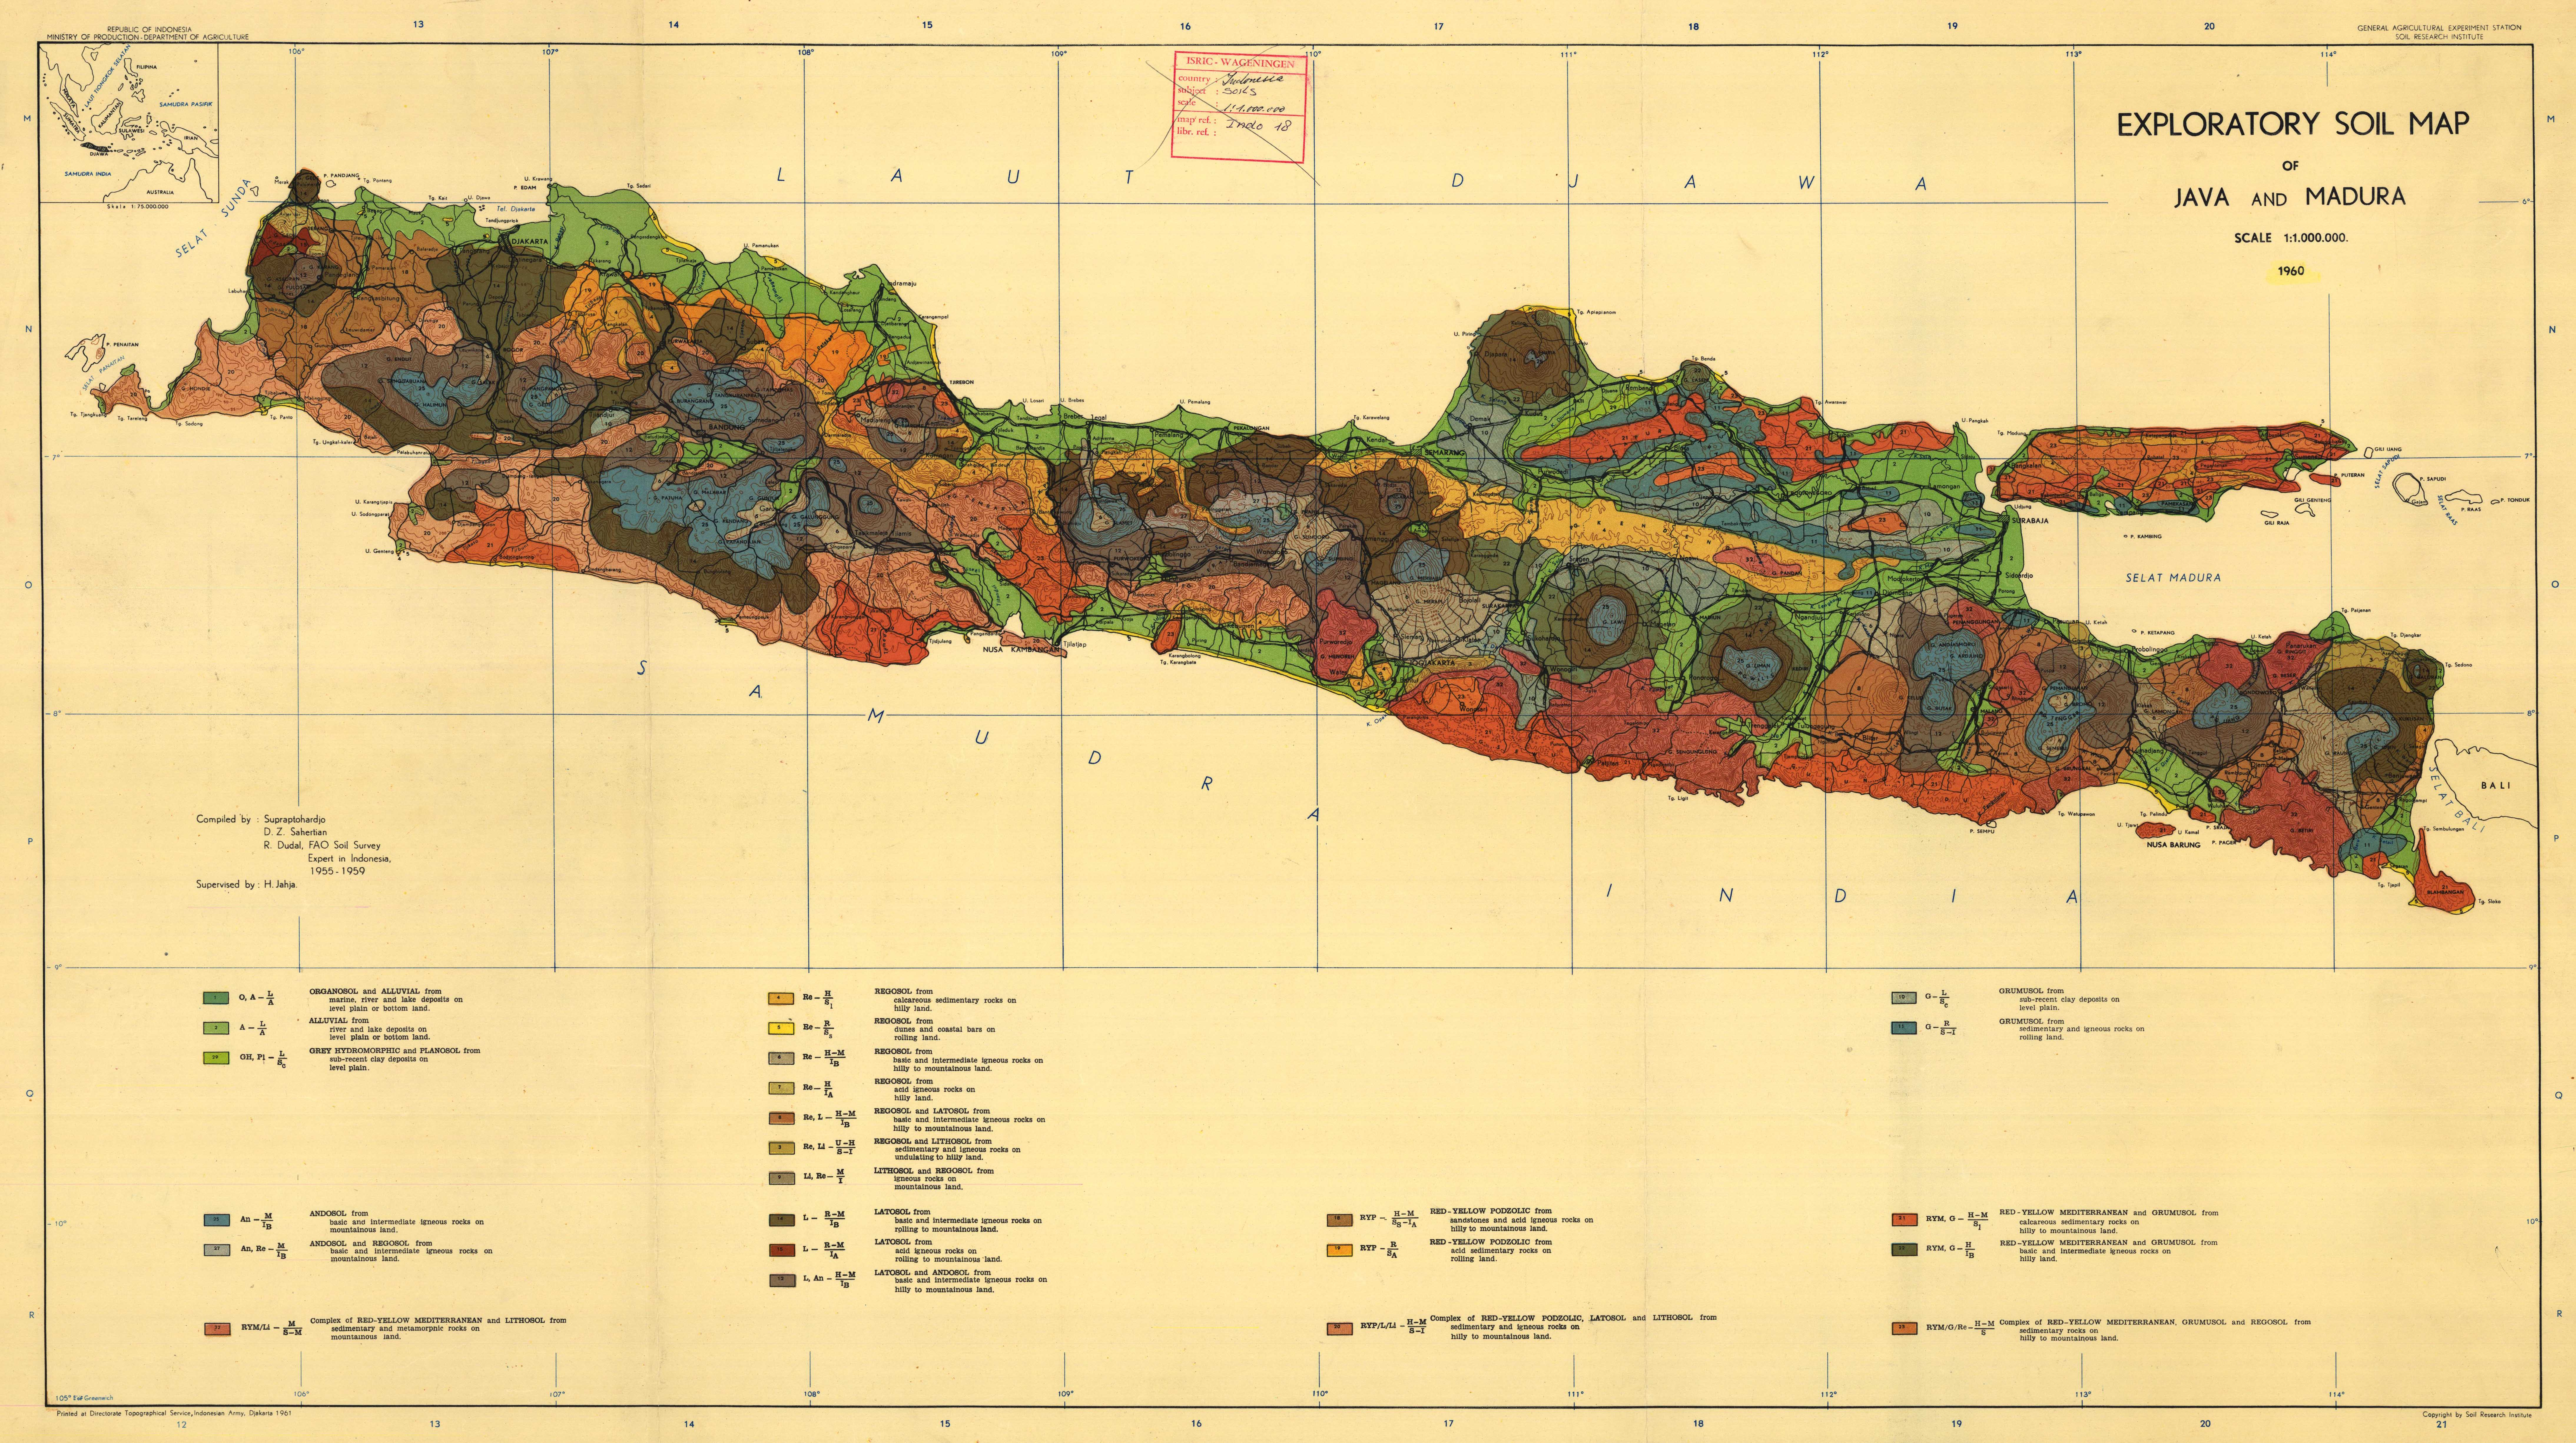 Exploratory soil map of java and madura esdac european commission download gumiabroncs Images